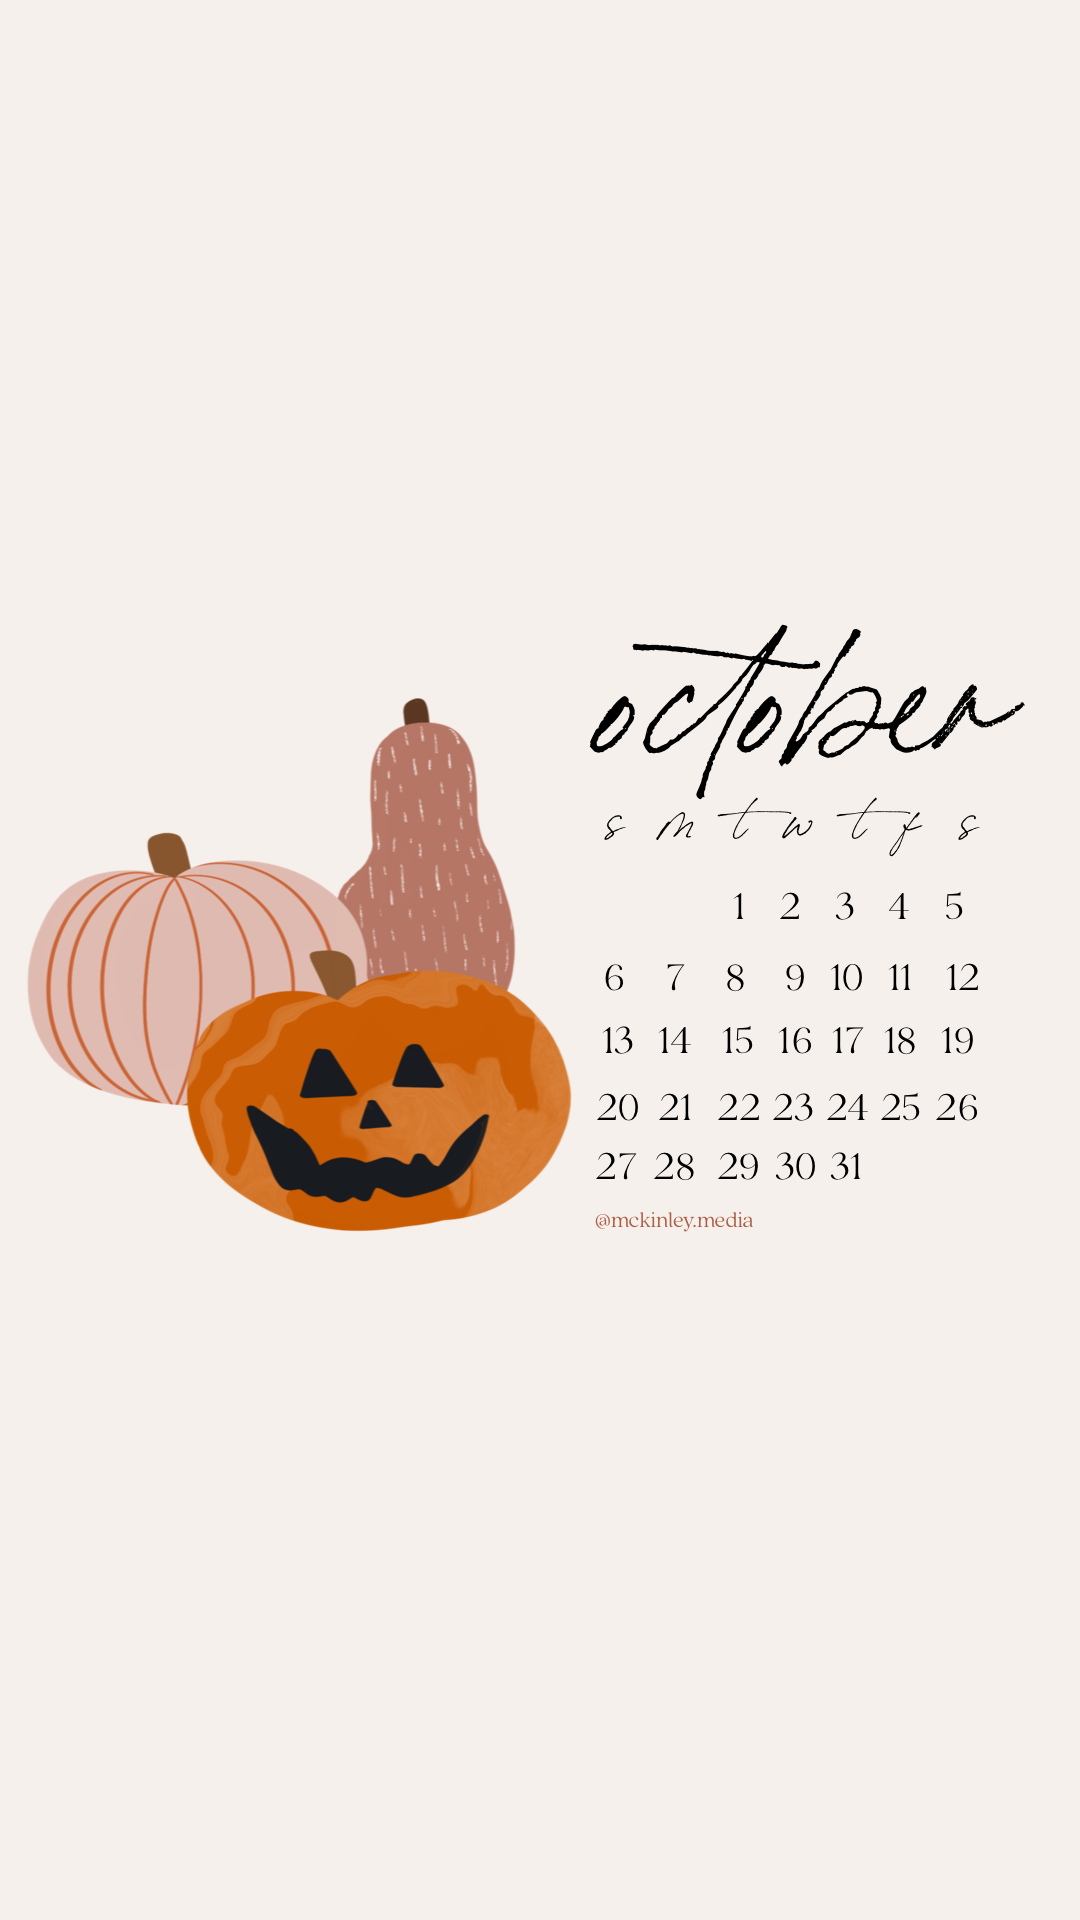 October Calendar octoberwallpaper October, October